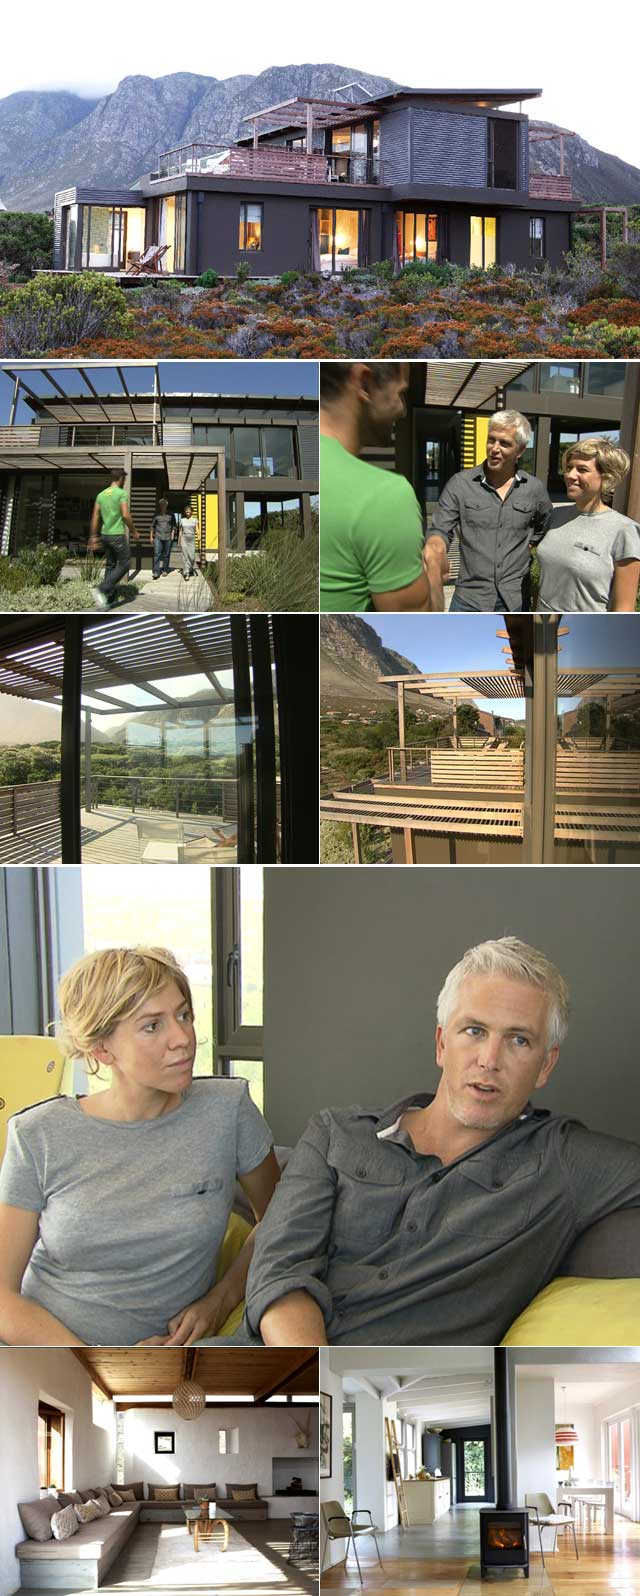 Top Billing features a green eco home